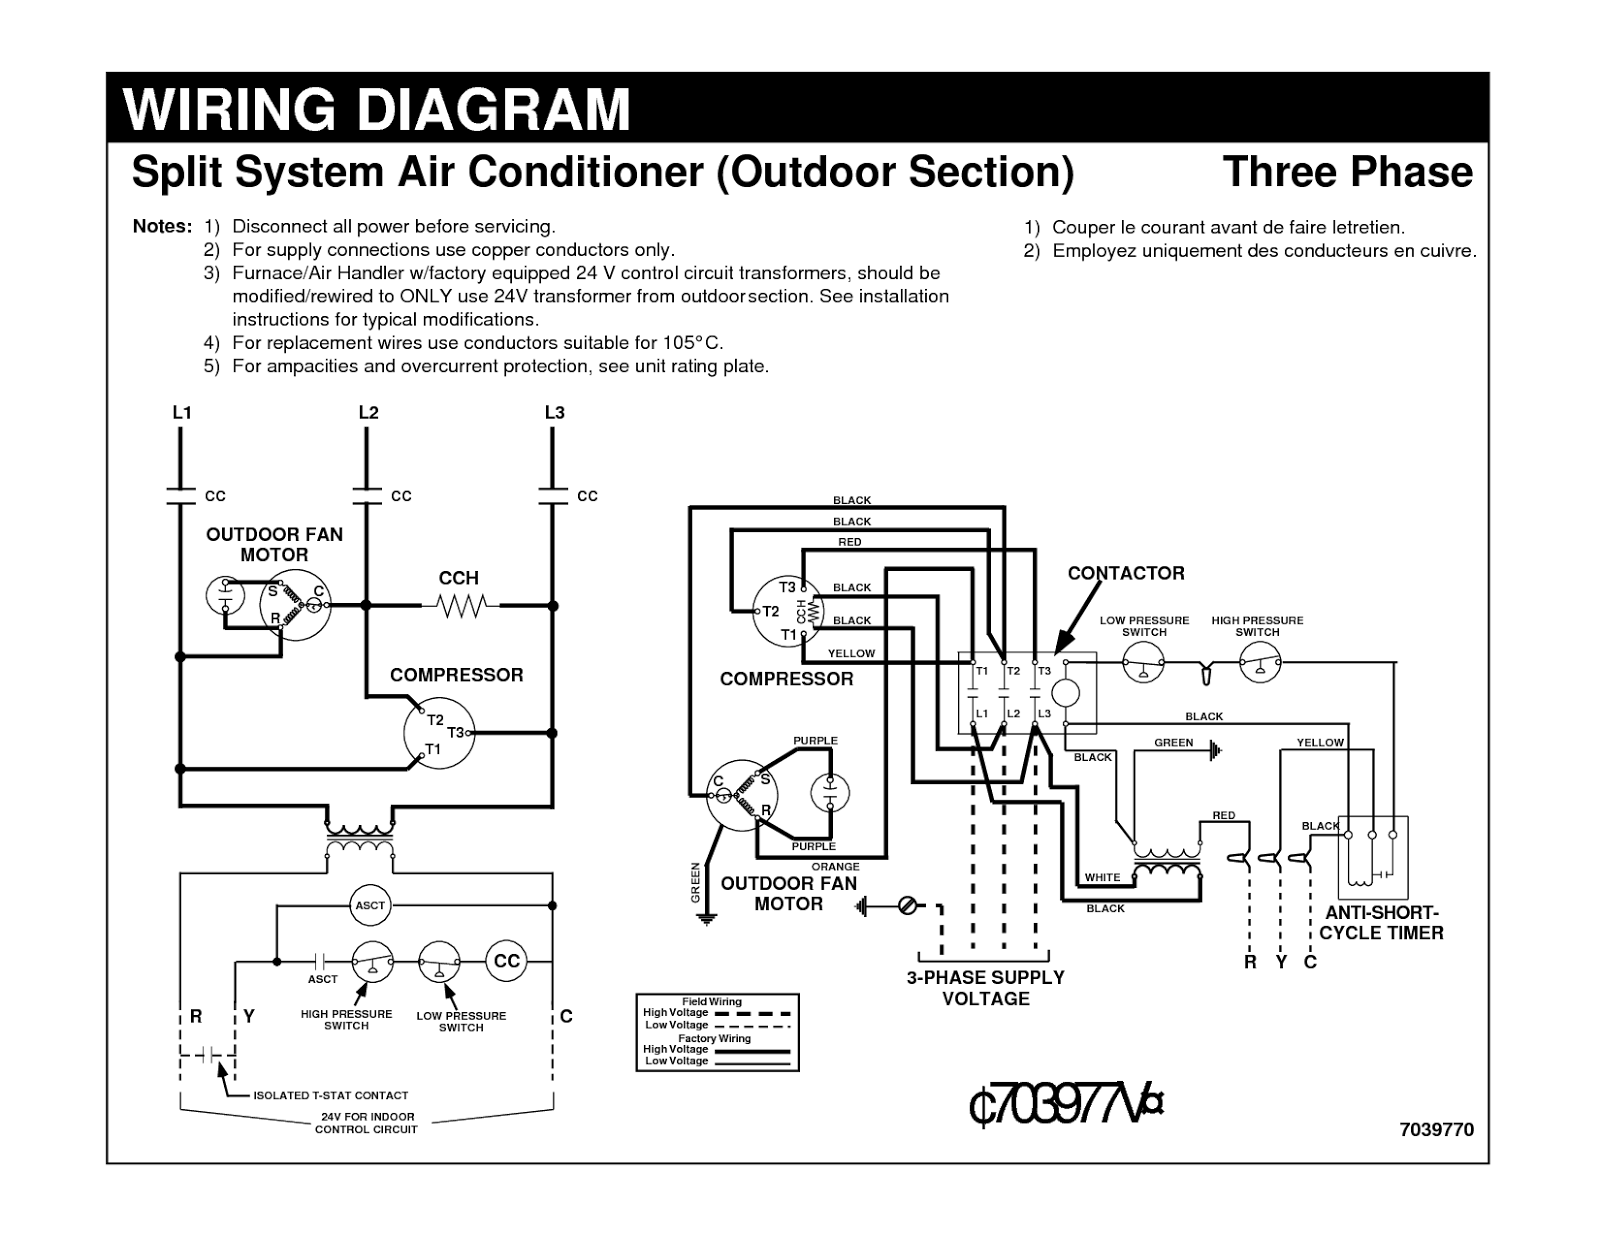 wiring+diagram+in+the+user+manual electrical wiring diagrams for air conditioning systems part one understanding electricity and wiring diagrams for hvac/r pdf at nearapp.co